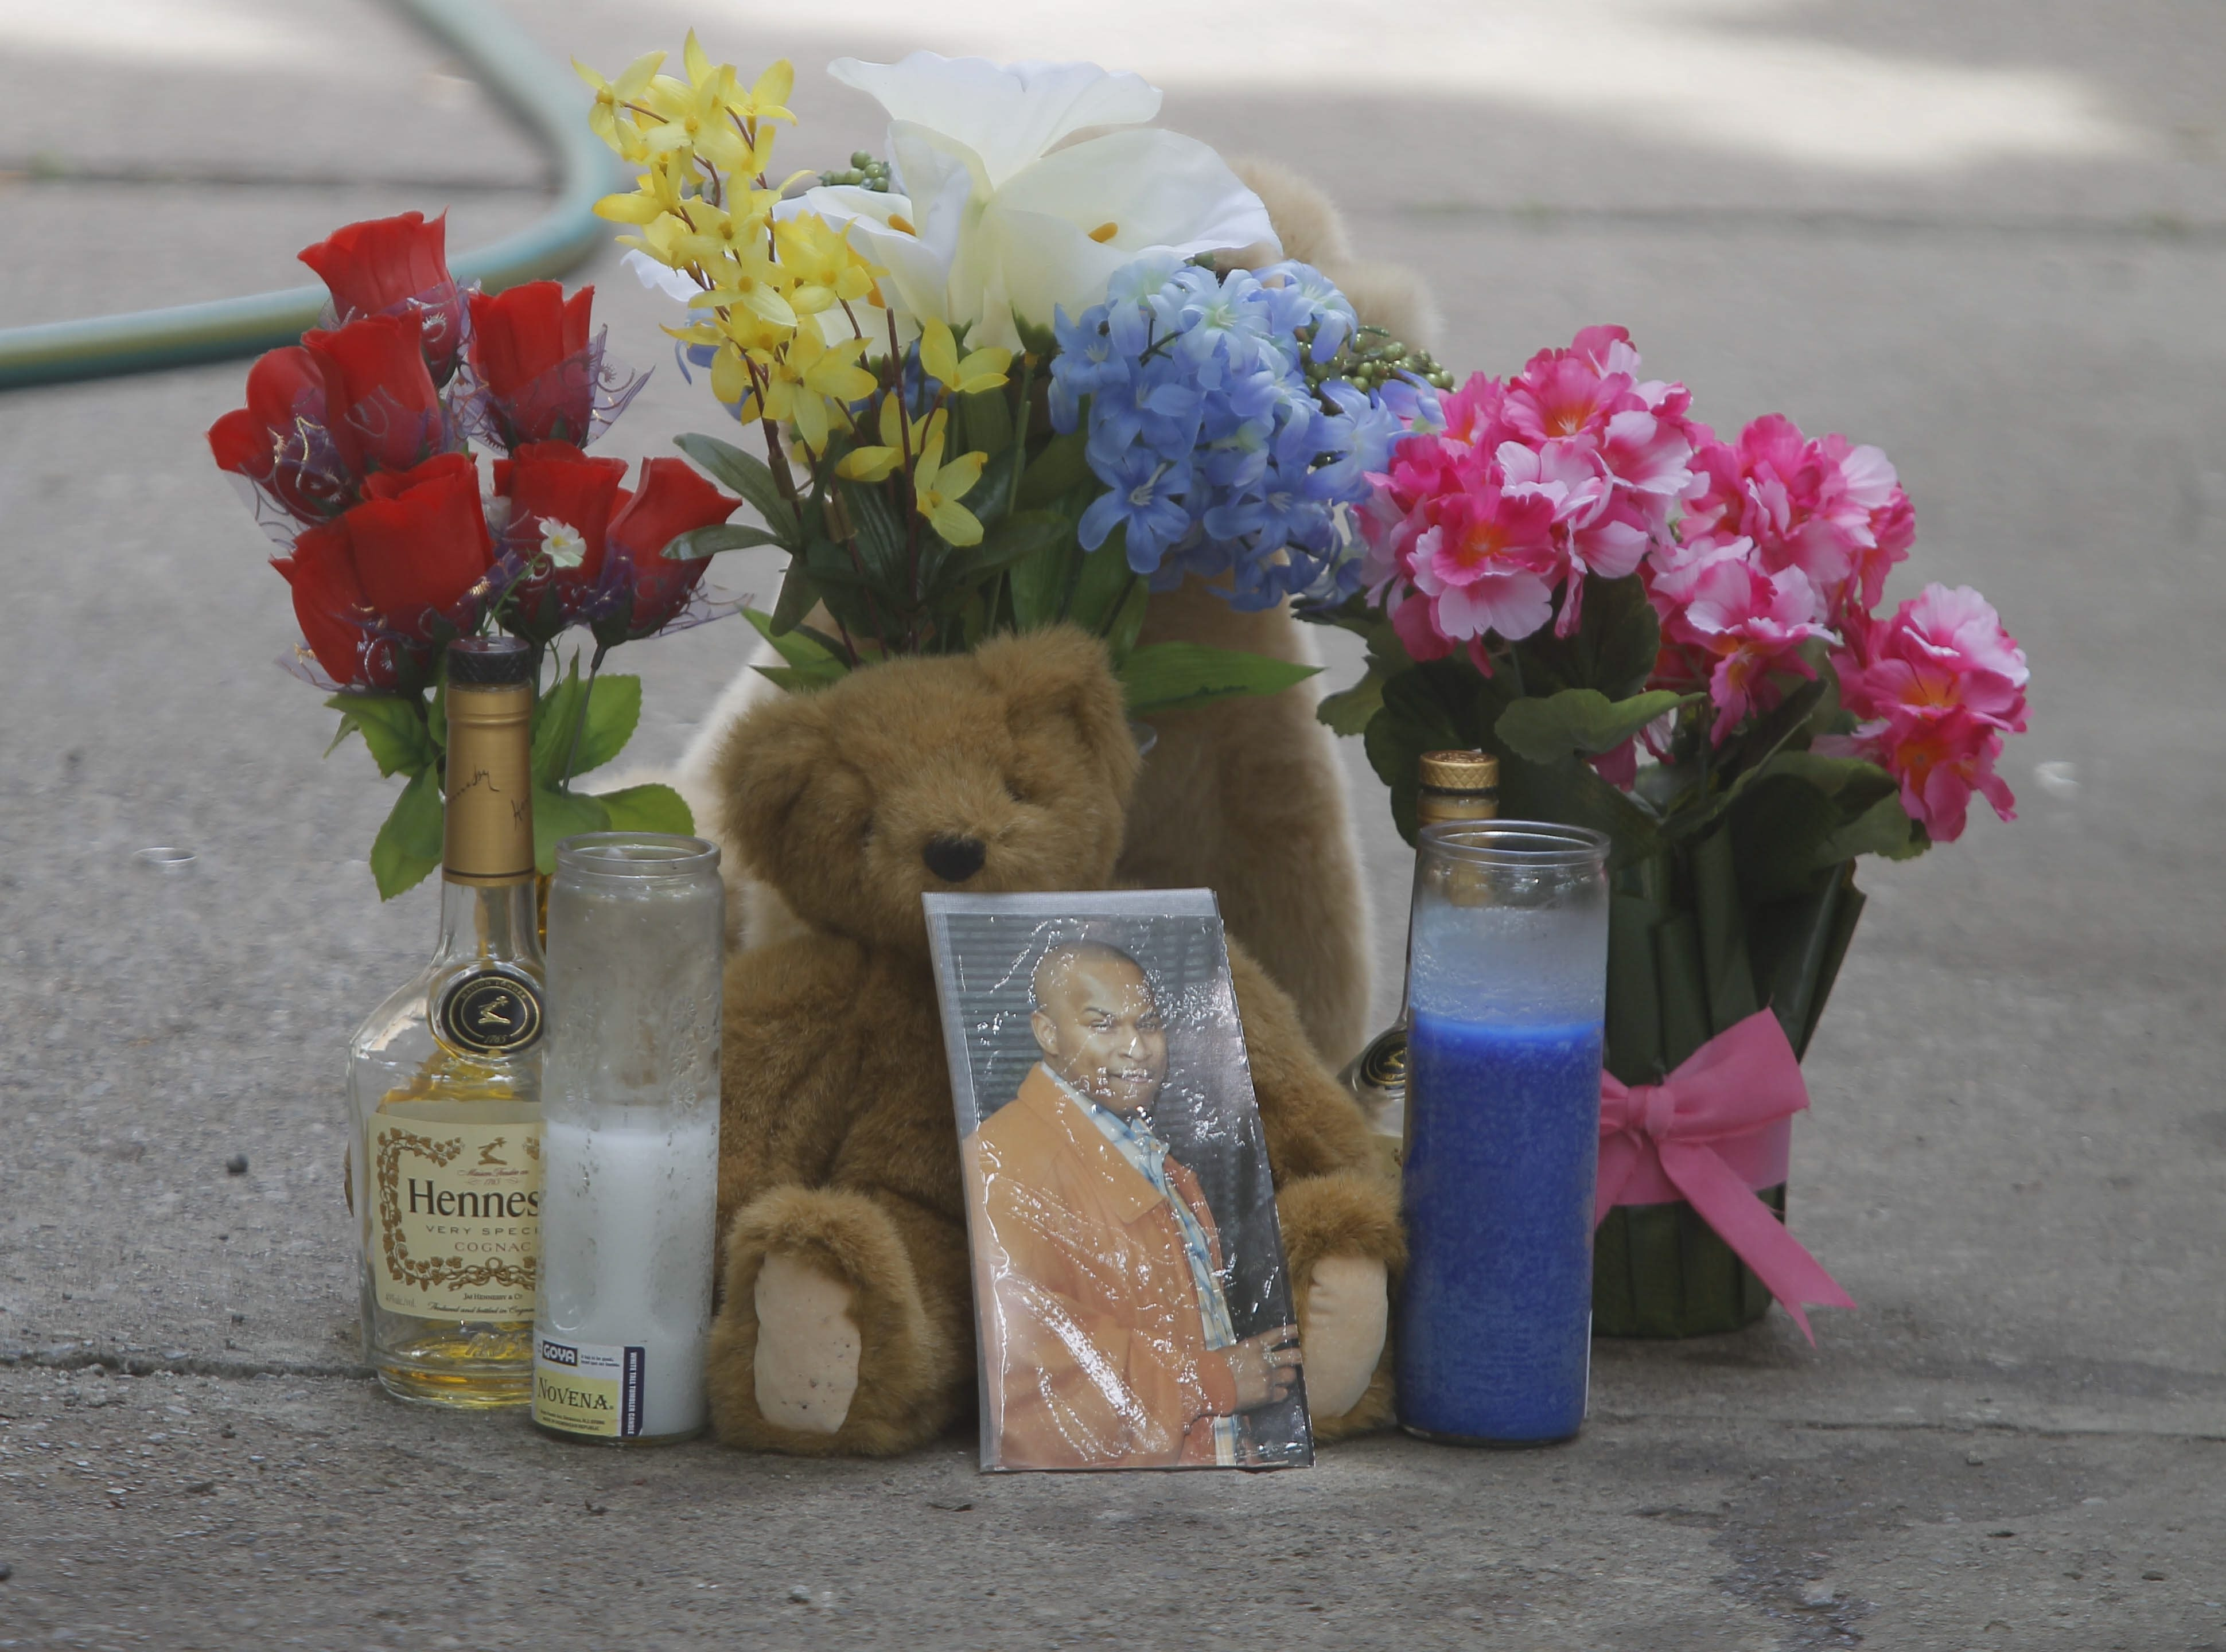 Memorial to Deshawn White in front of home where he was gunned down at  105 St. Joseph Street   in Buffalo, N.Y.  on Monday, June 23, 2014.   (John Hickey/Buffalo News)